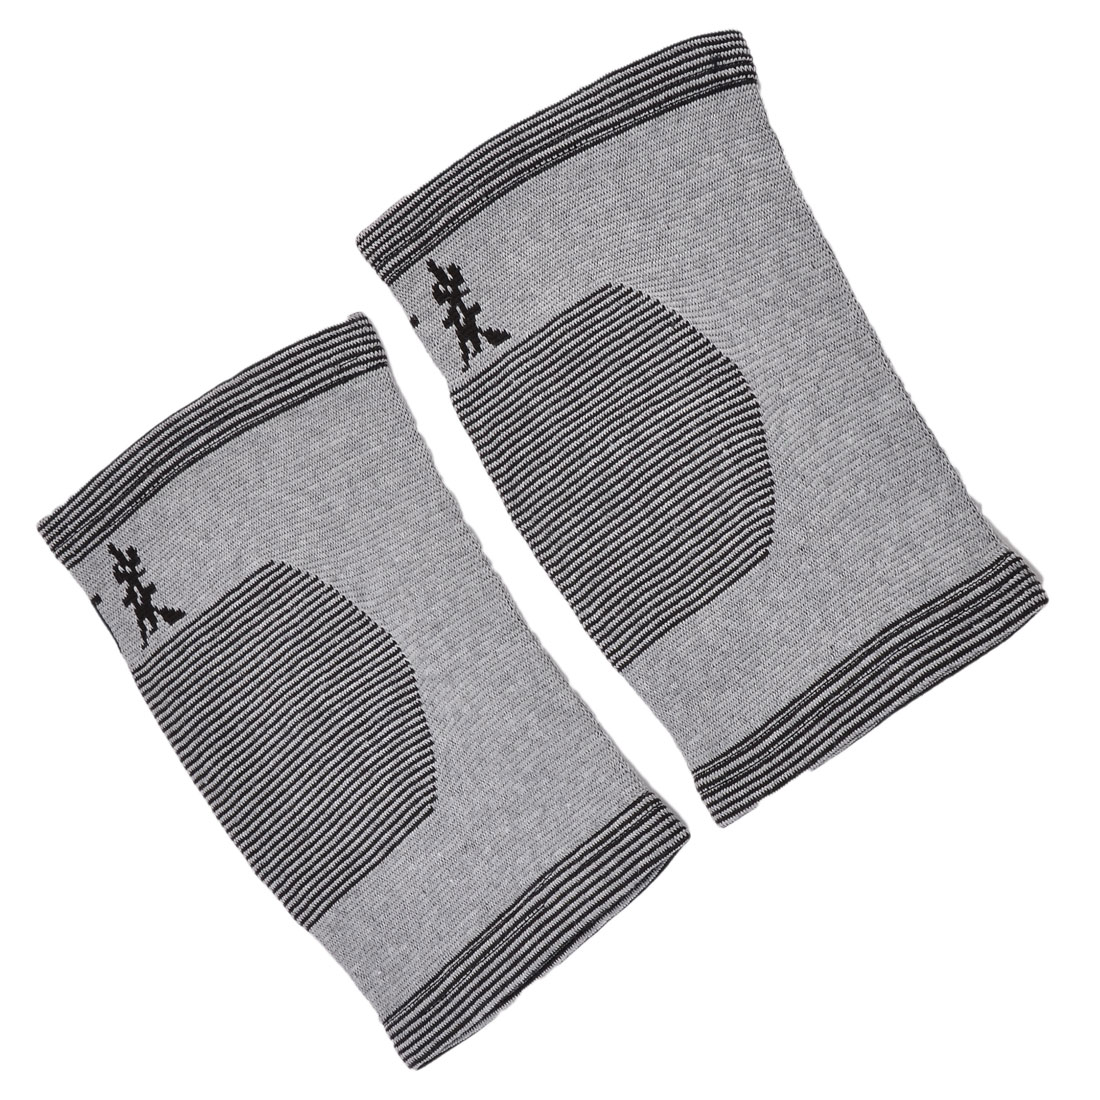 Outdoor Fitness Spandex Strips Pattern Stretch Knee Support Pad Gray Black Pair